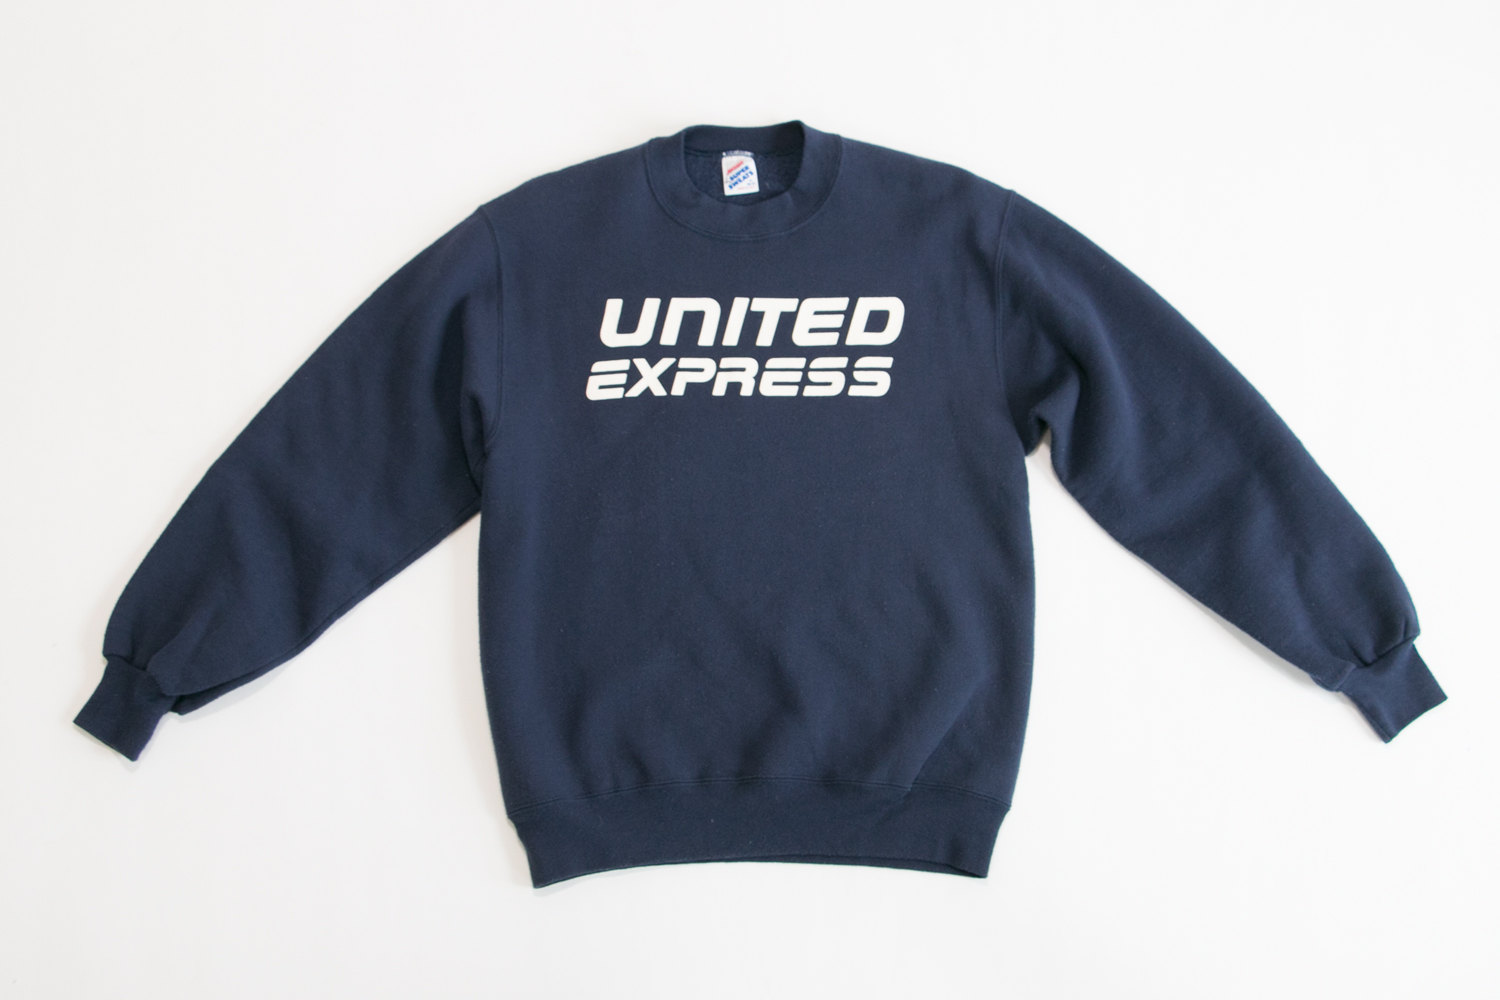 Vintage United Express Airline Crewneck Sweater // Size Medium, 38-40 // Navy Blue //  Retro, Hipster, Advertising